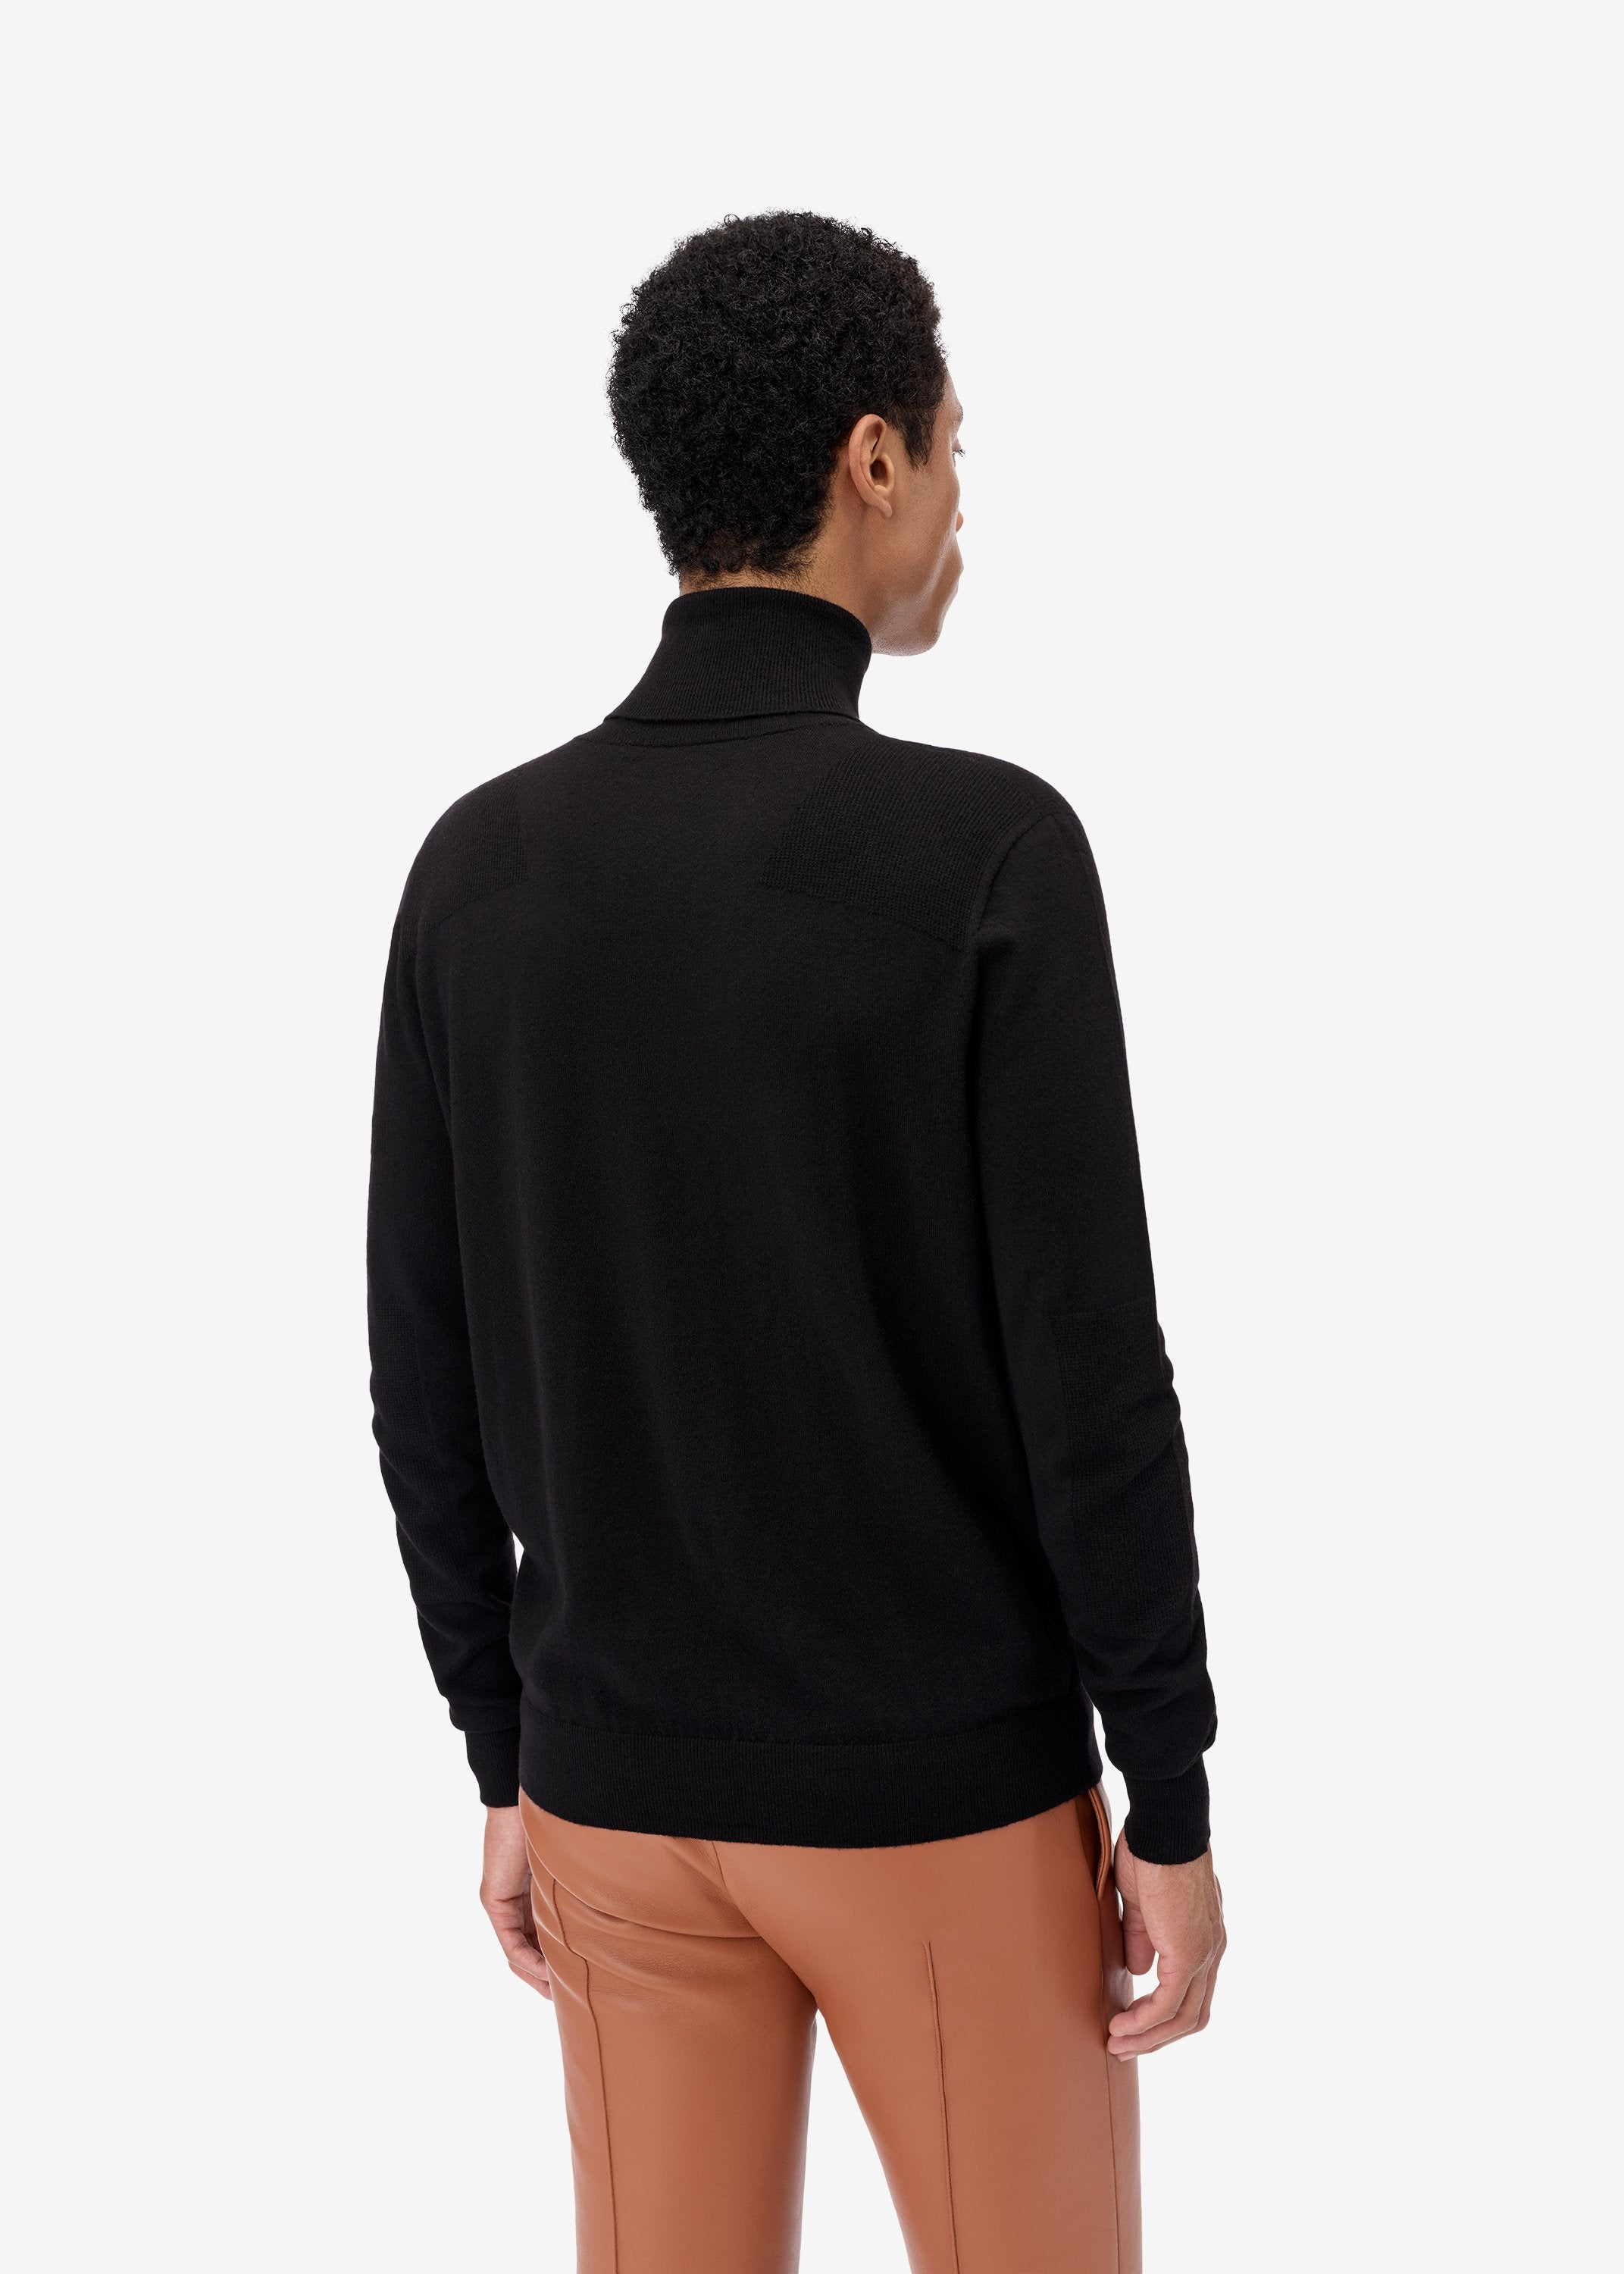 fitted-wool-turtleneck-black-image-4